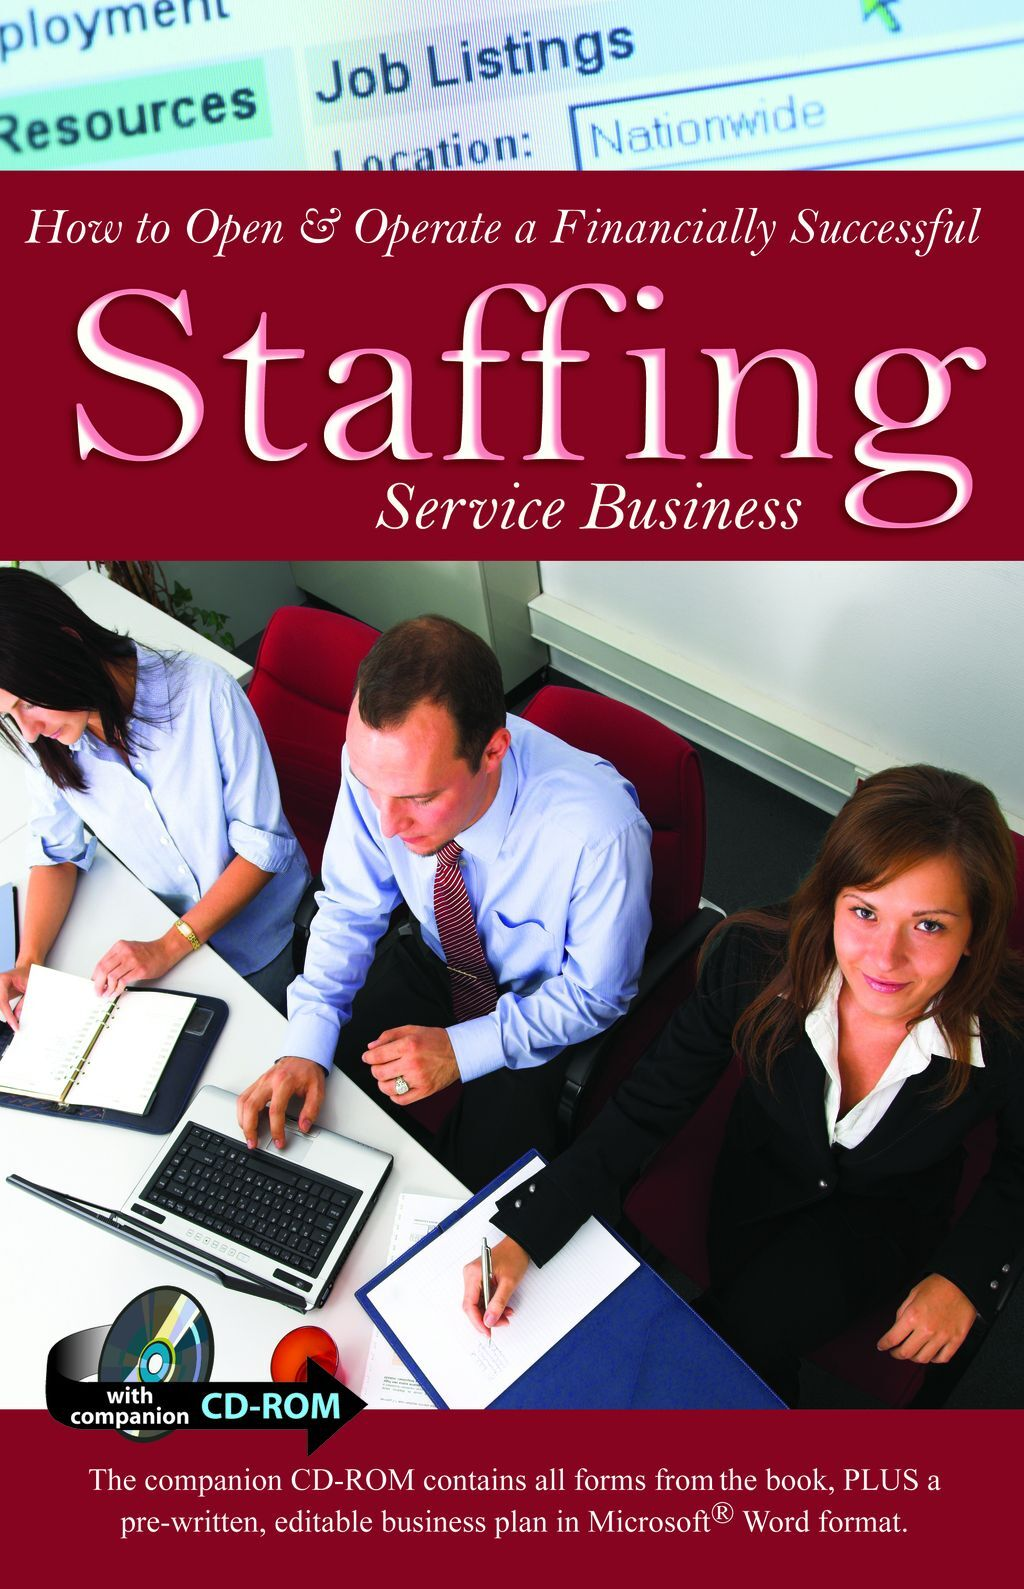 How To Open & Operate A Financially Successful Staffing Service Business